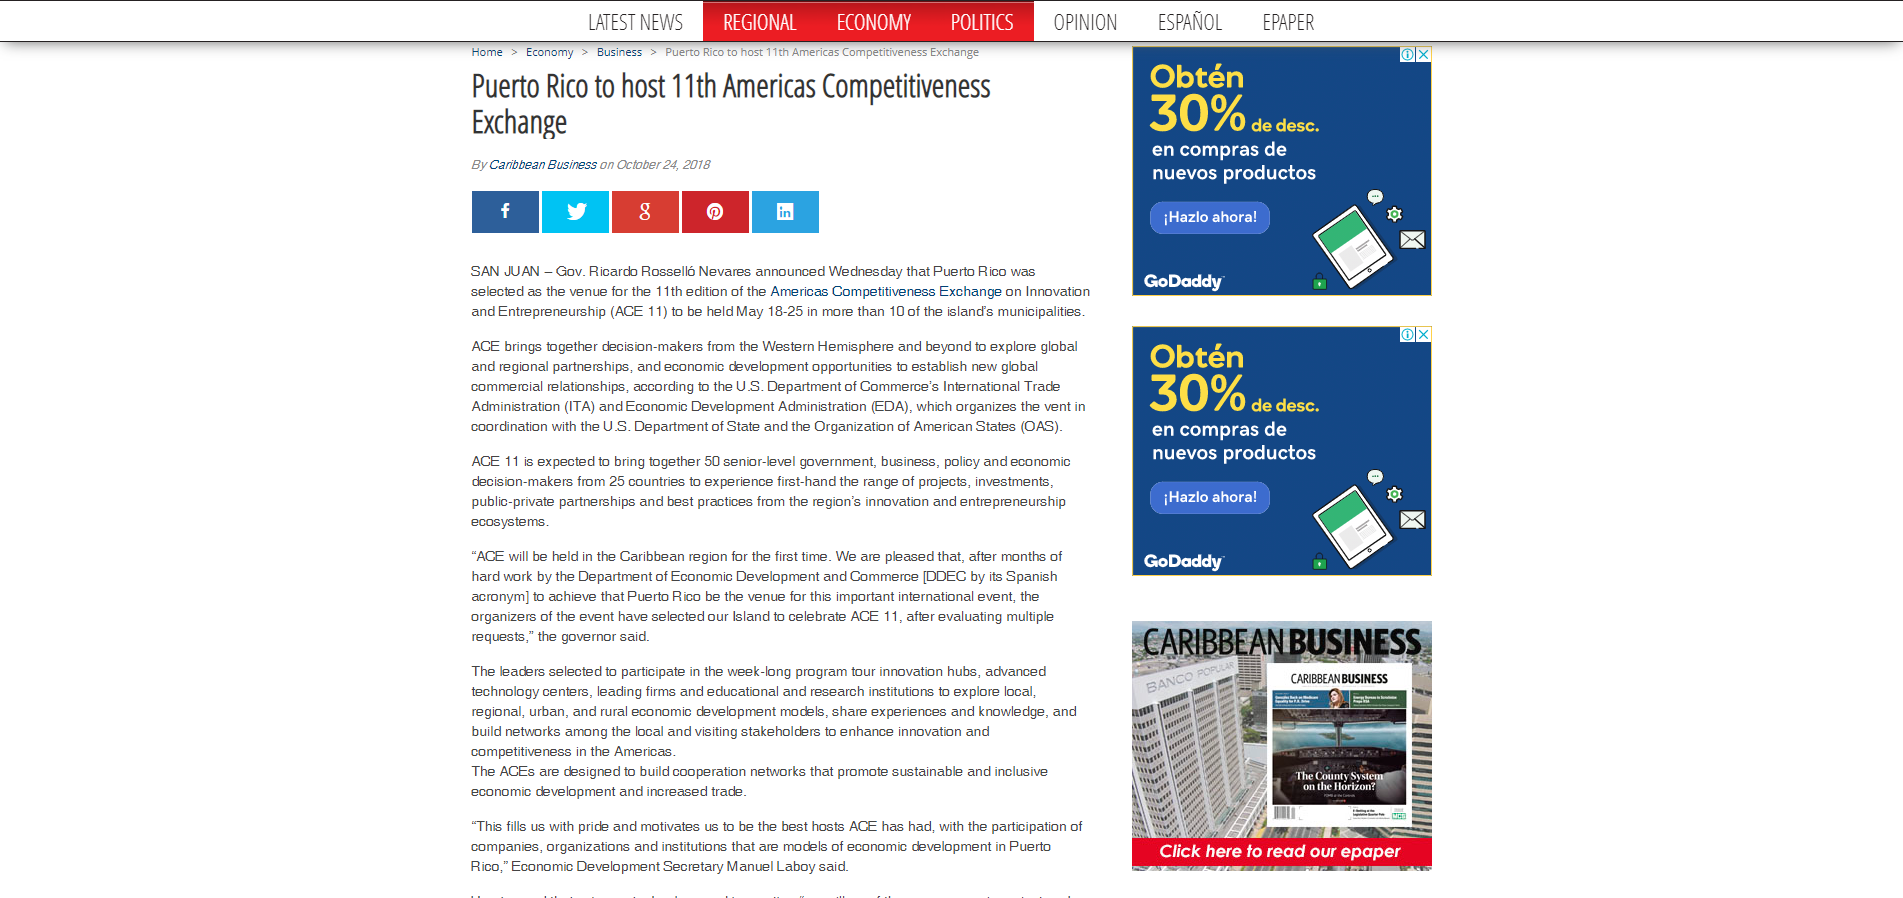 """Puerto Rico to host 11th Americas Competitiveness Exchange"", Caribbean Business, October 24, 2018,"